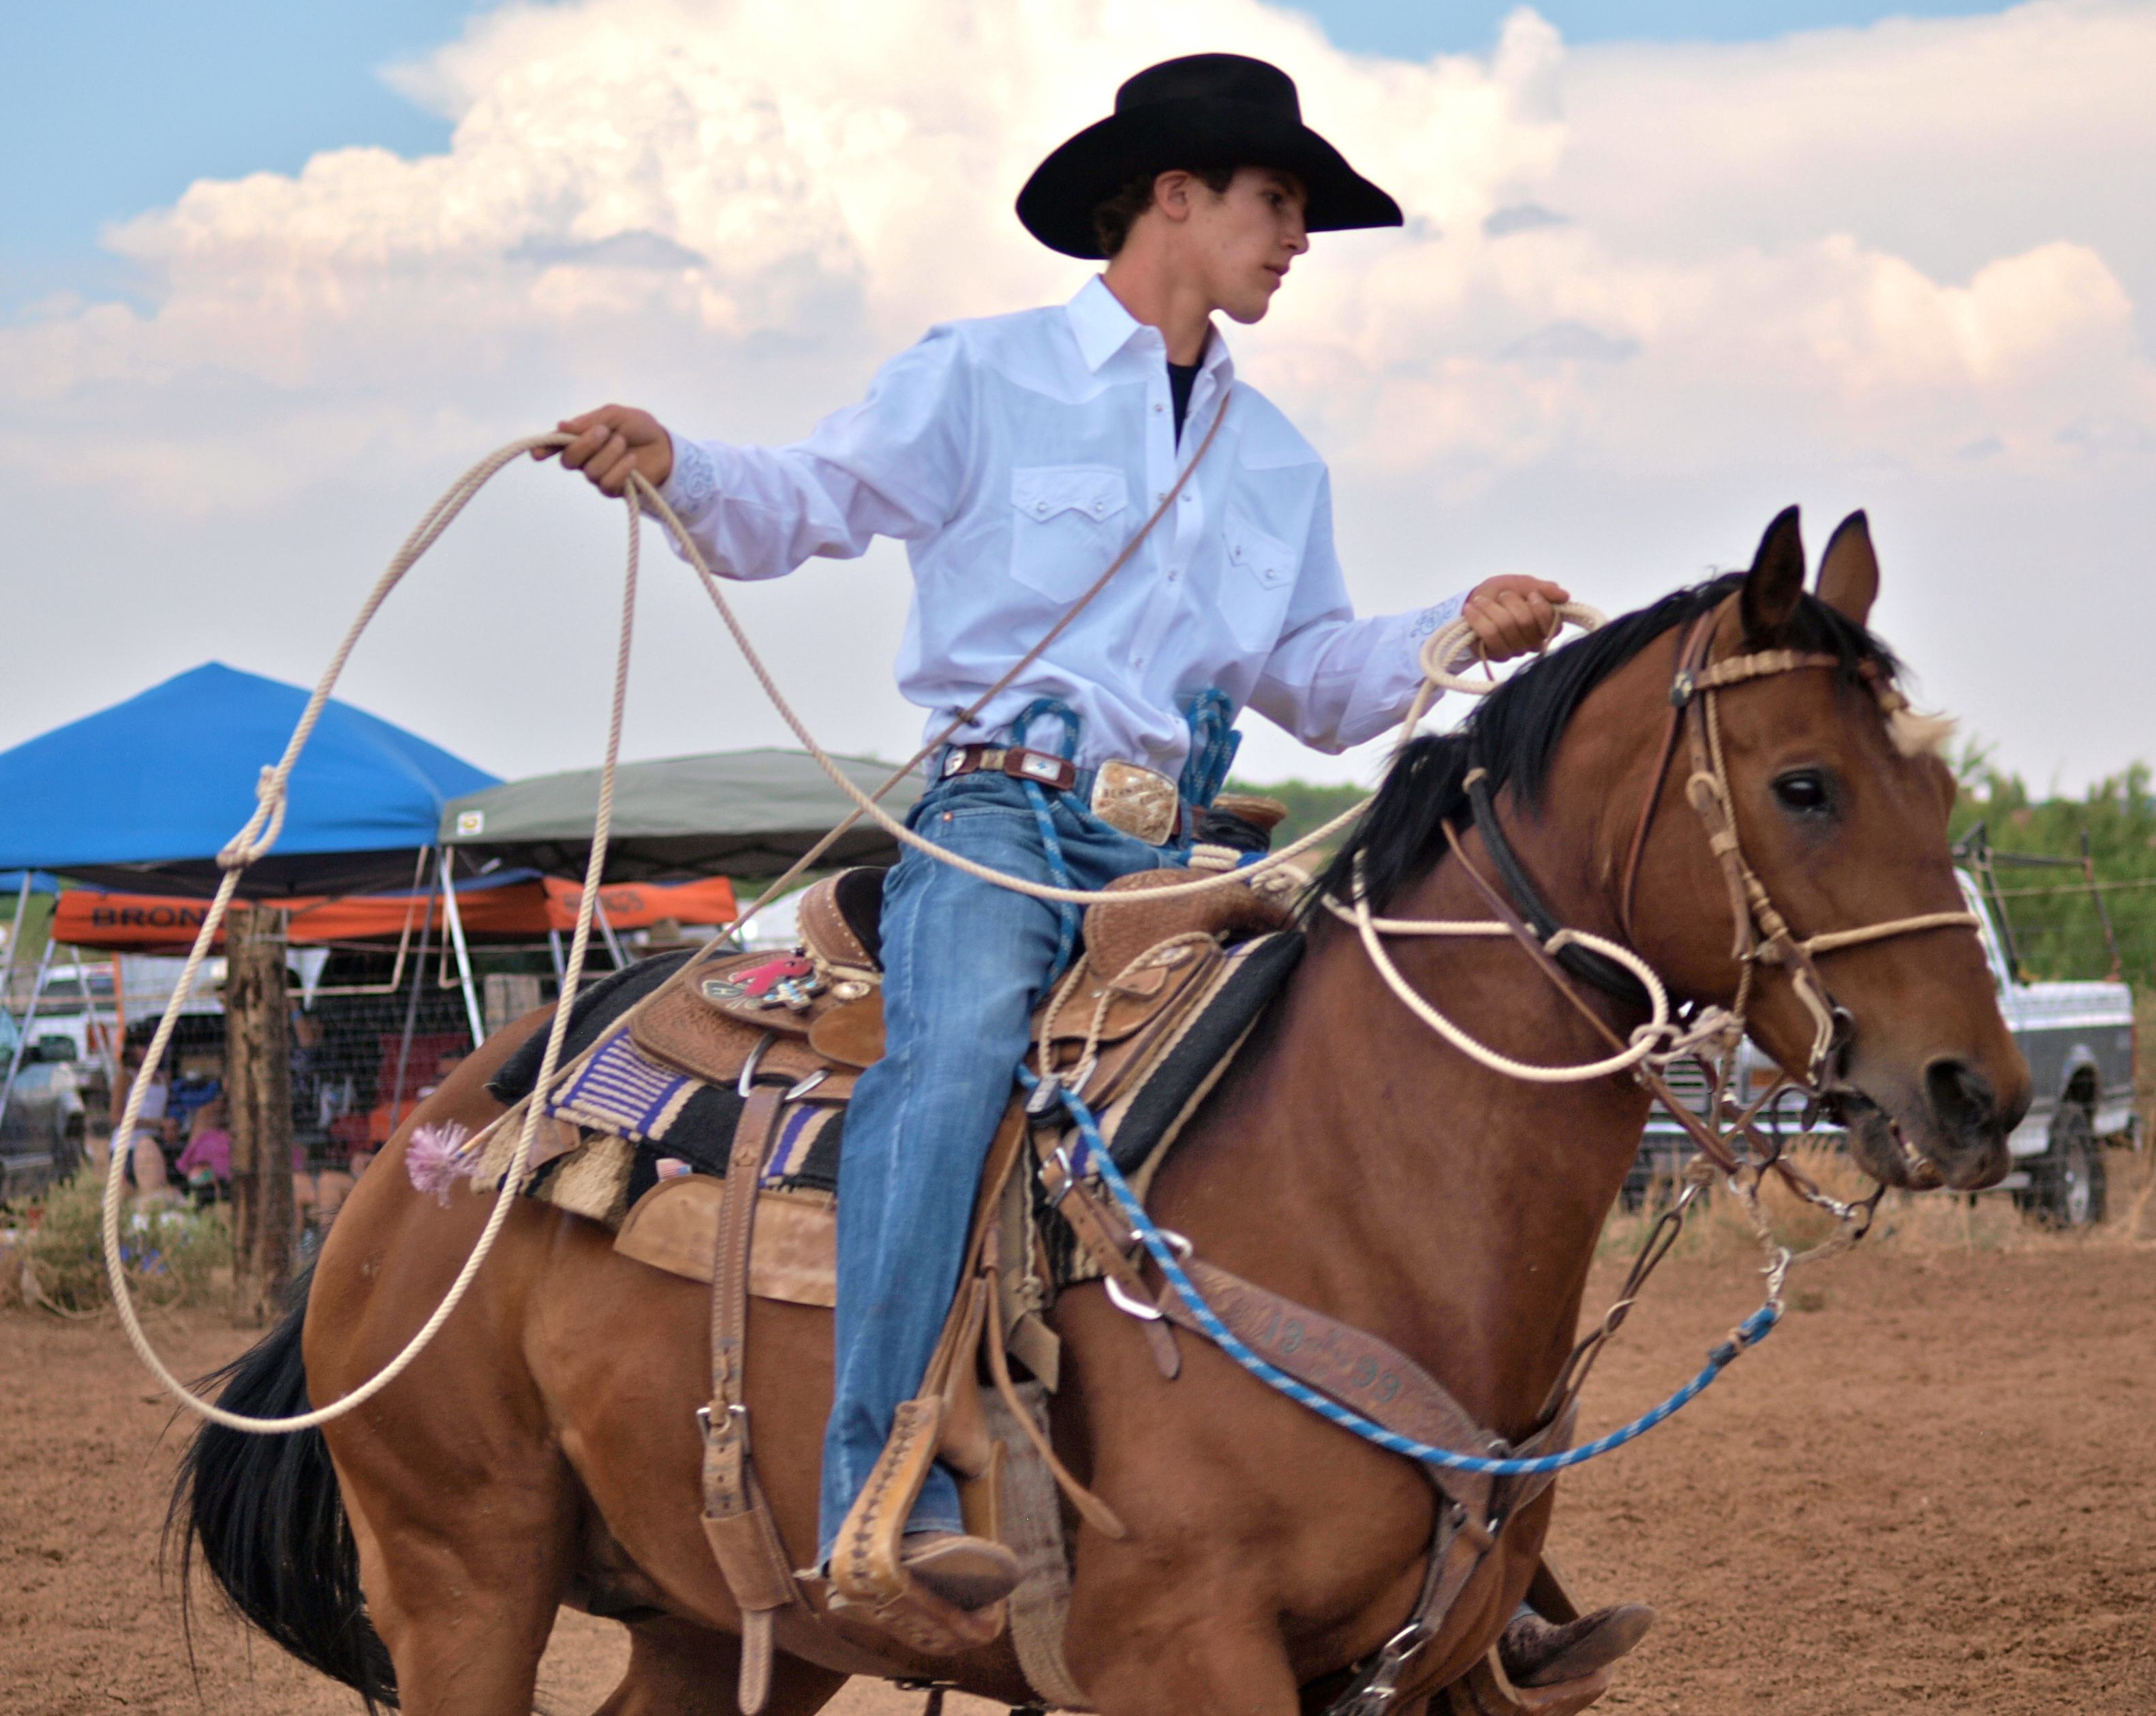 Country cowboys - photo#24